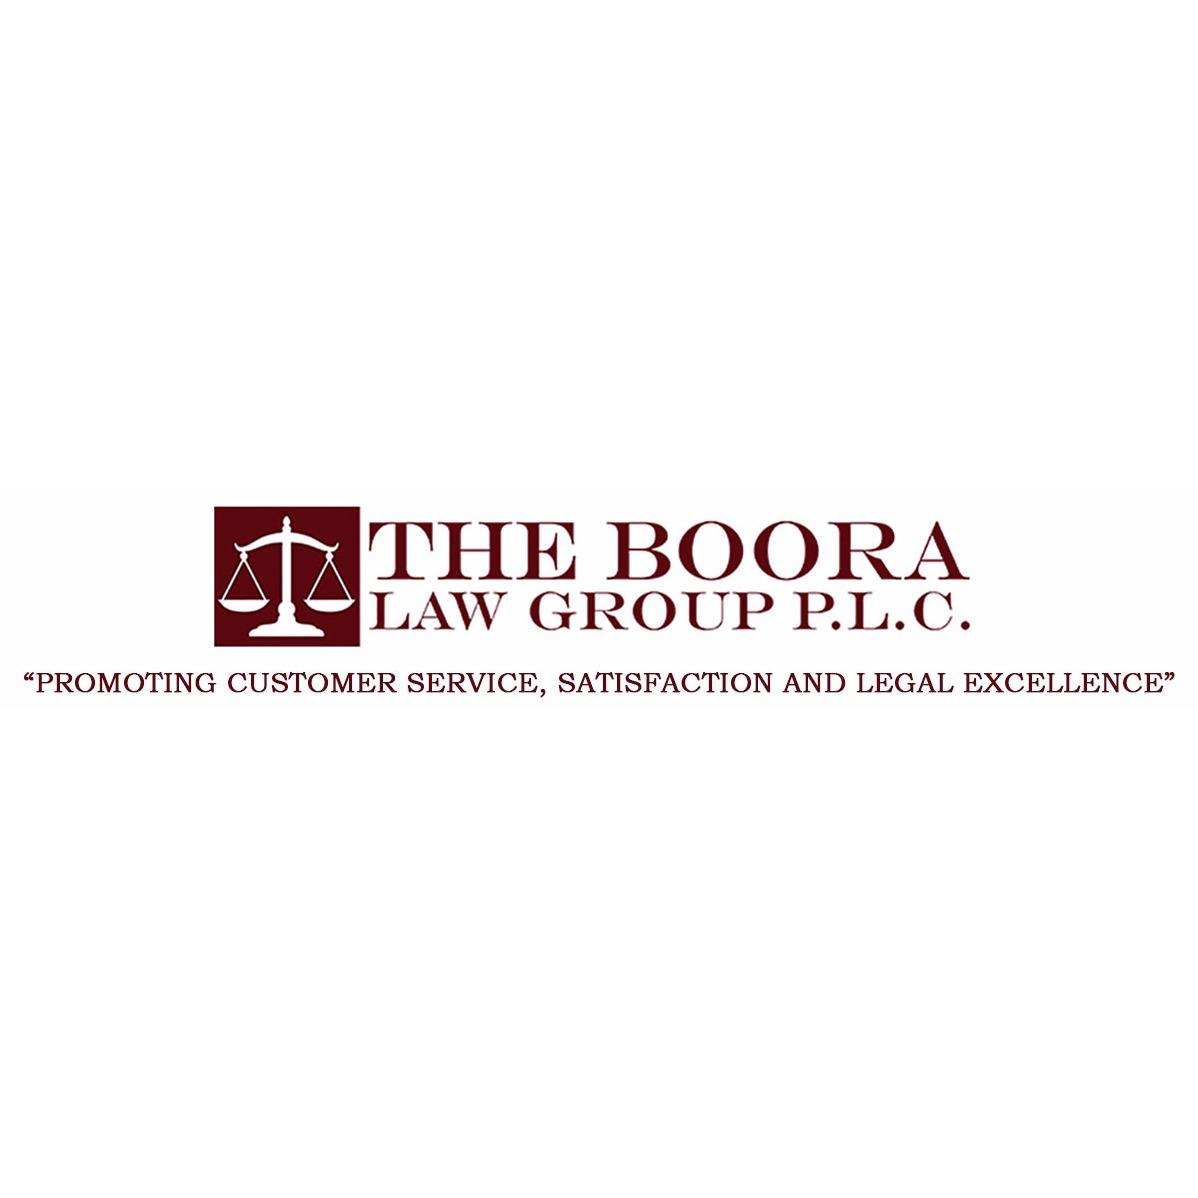 The Boora Law Group P.L.C.